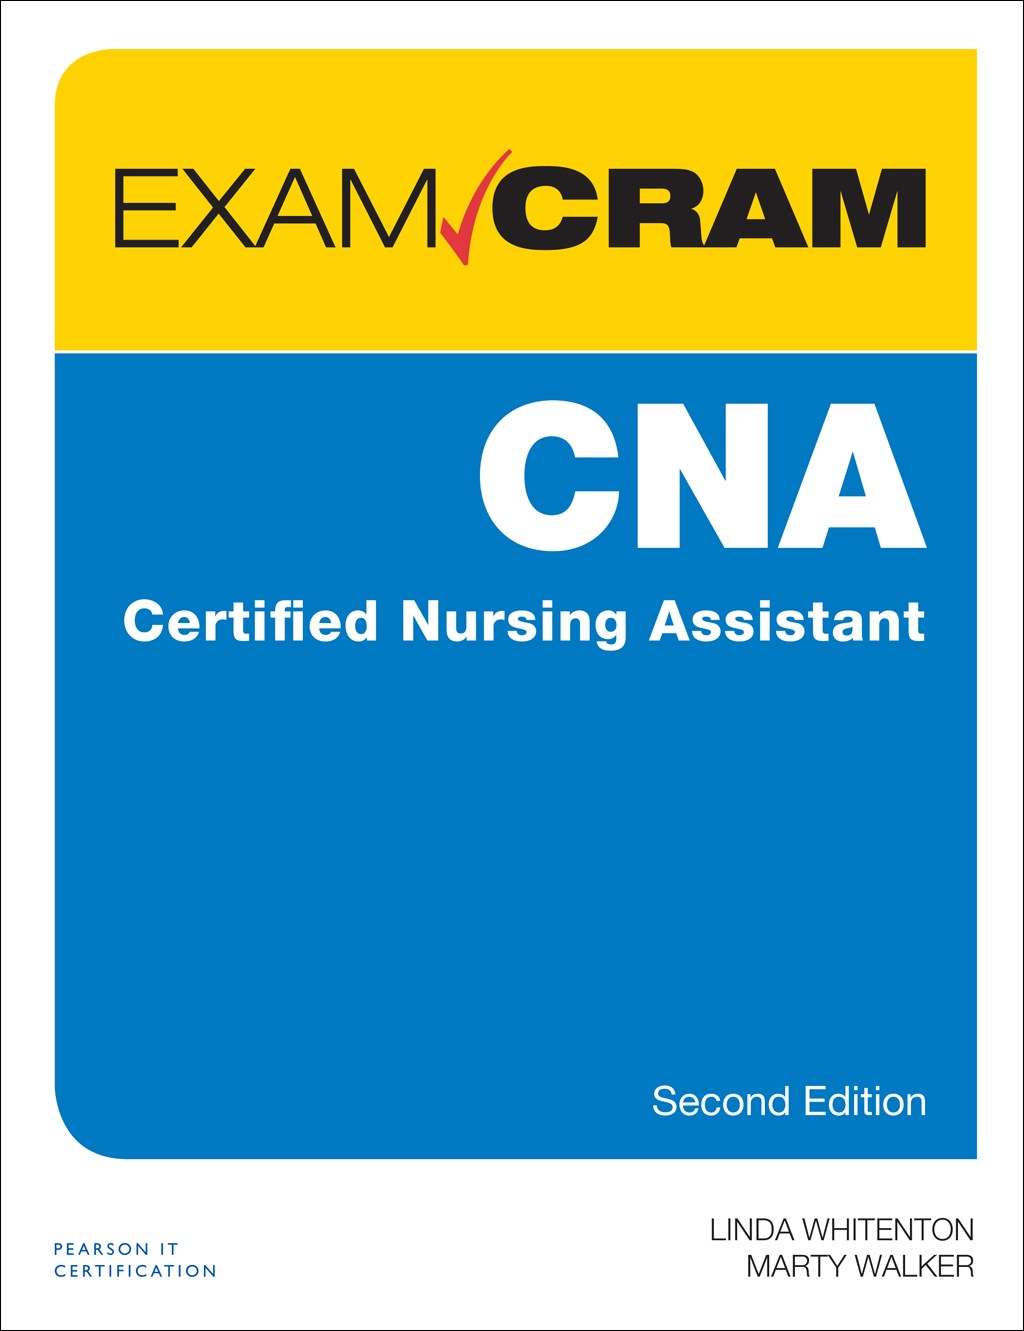 Cna certified nursing assistant exam cram 2nd edition pearson cna certified nursing assistant exam cram 2nd edition xflitez Image collections